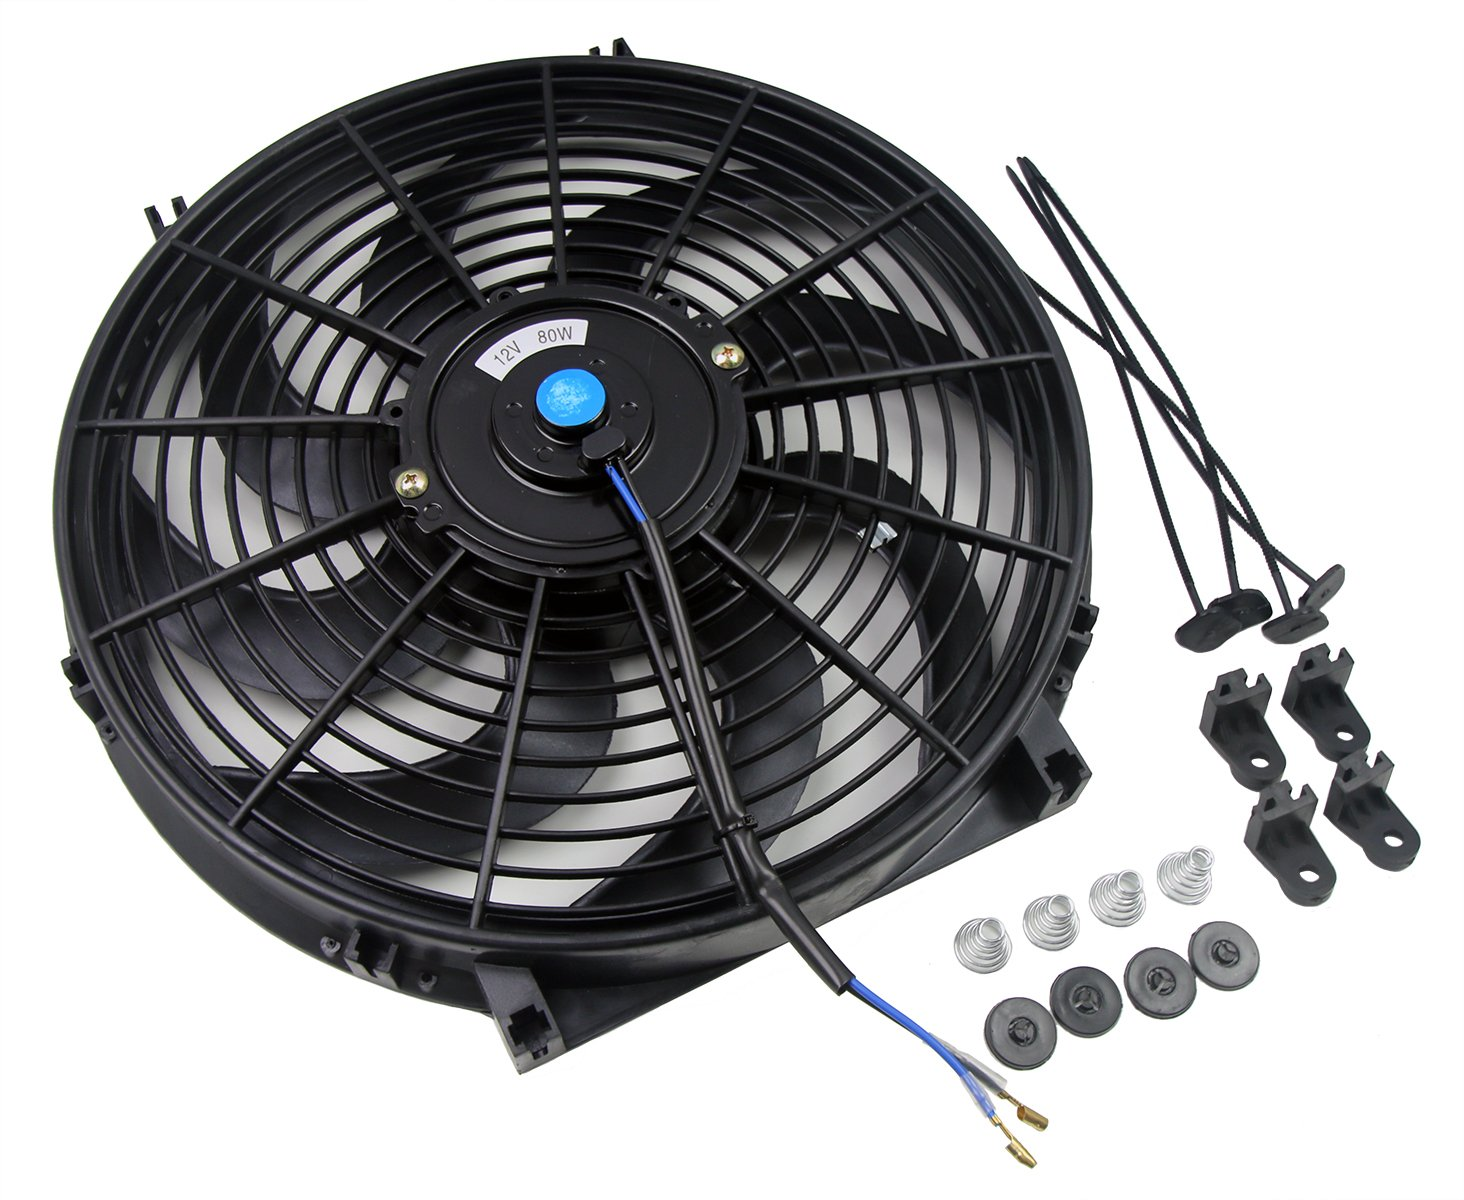 SUNDELY® 14 inch 12V 80W Universal Slim Line Curved Blade Electric Radiator Engine Cooling Fan